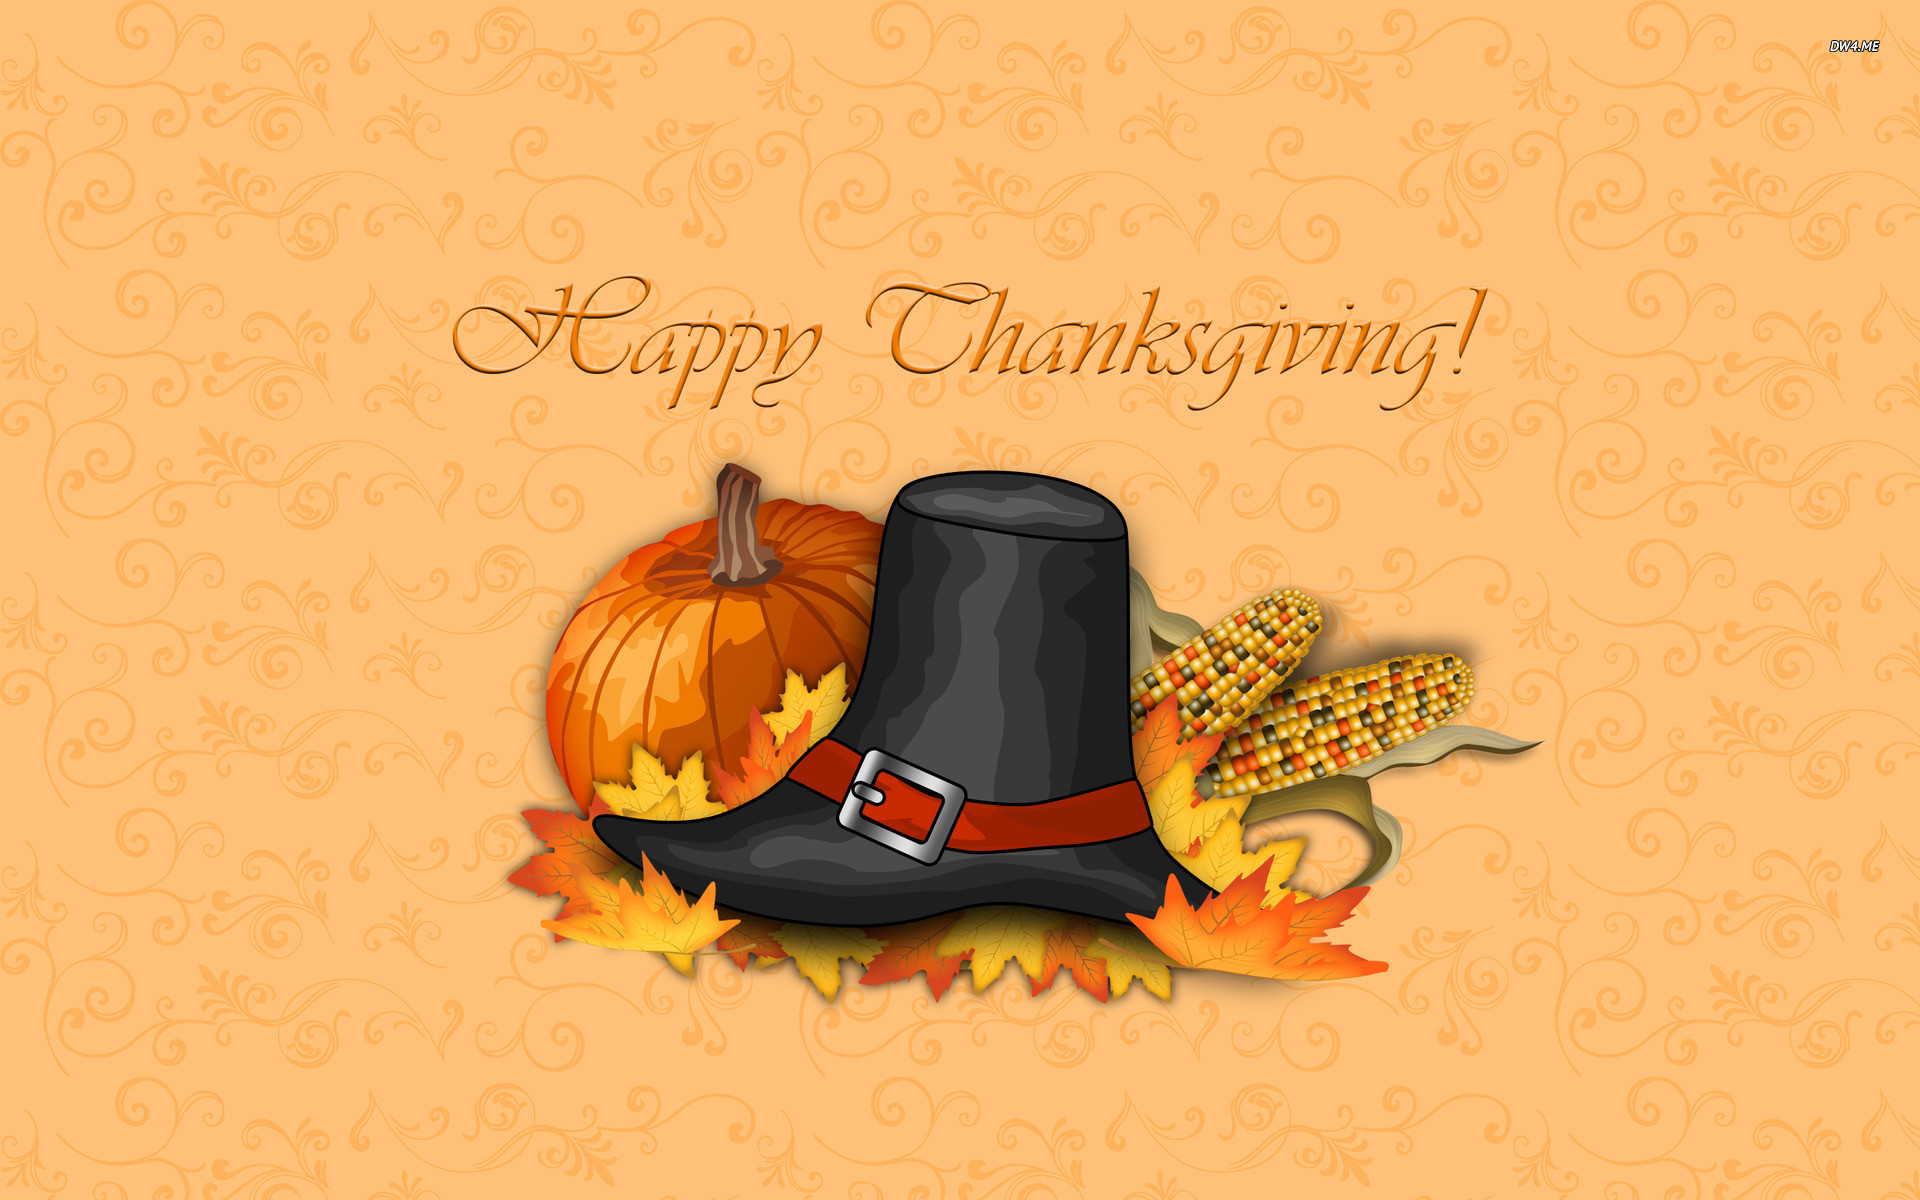 1920x1200 Happy Thanksgiving wallpaper Holiday wallpapers 1787